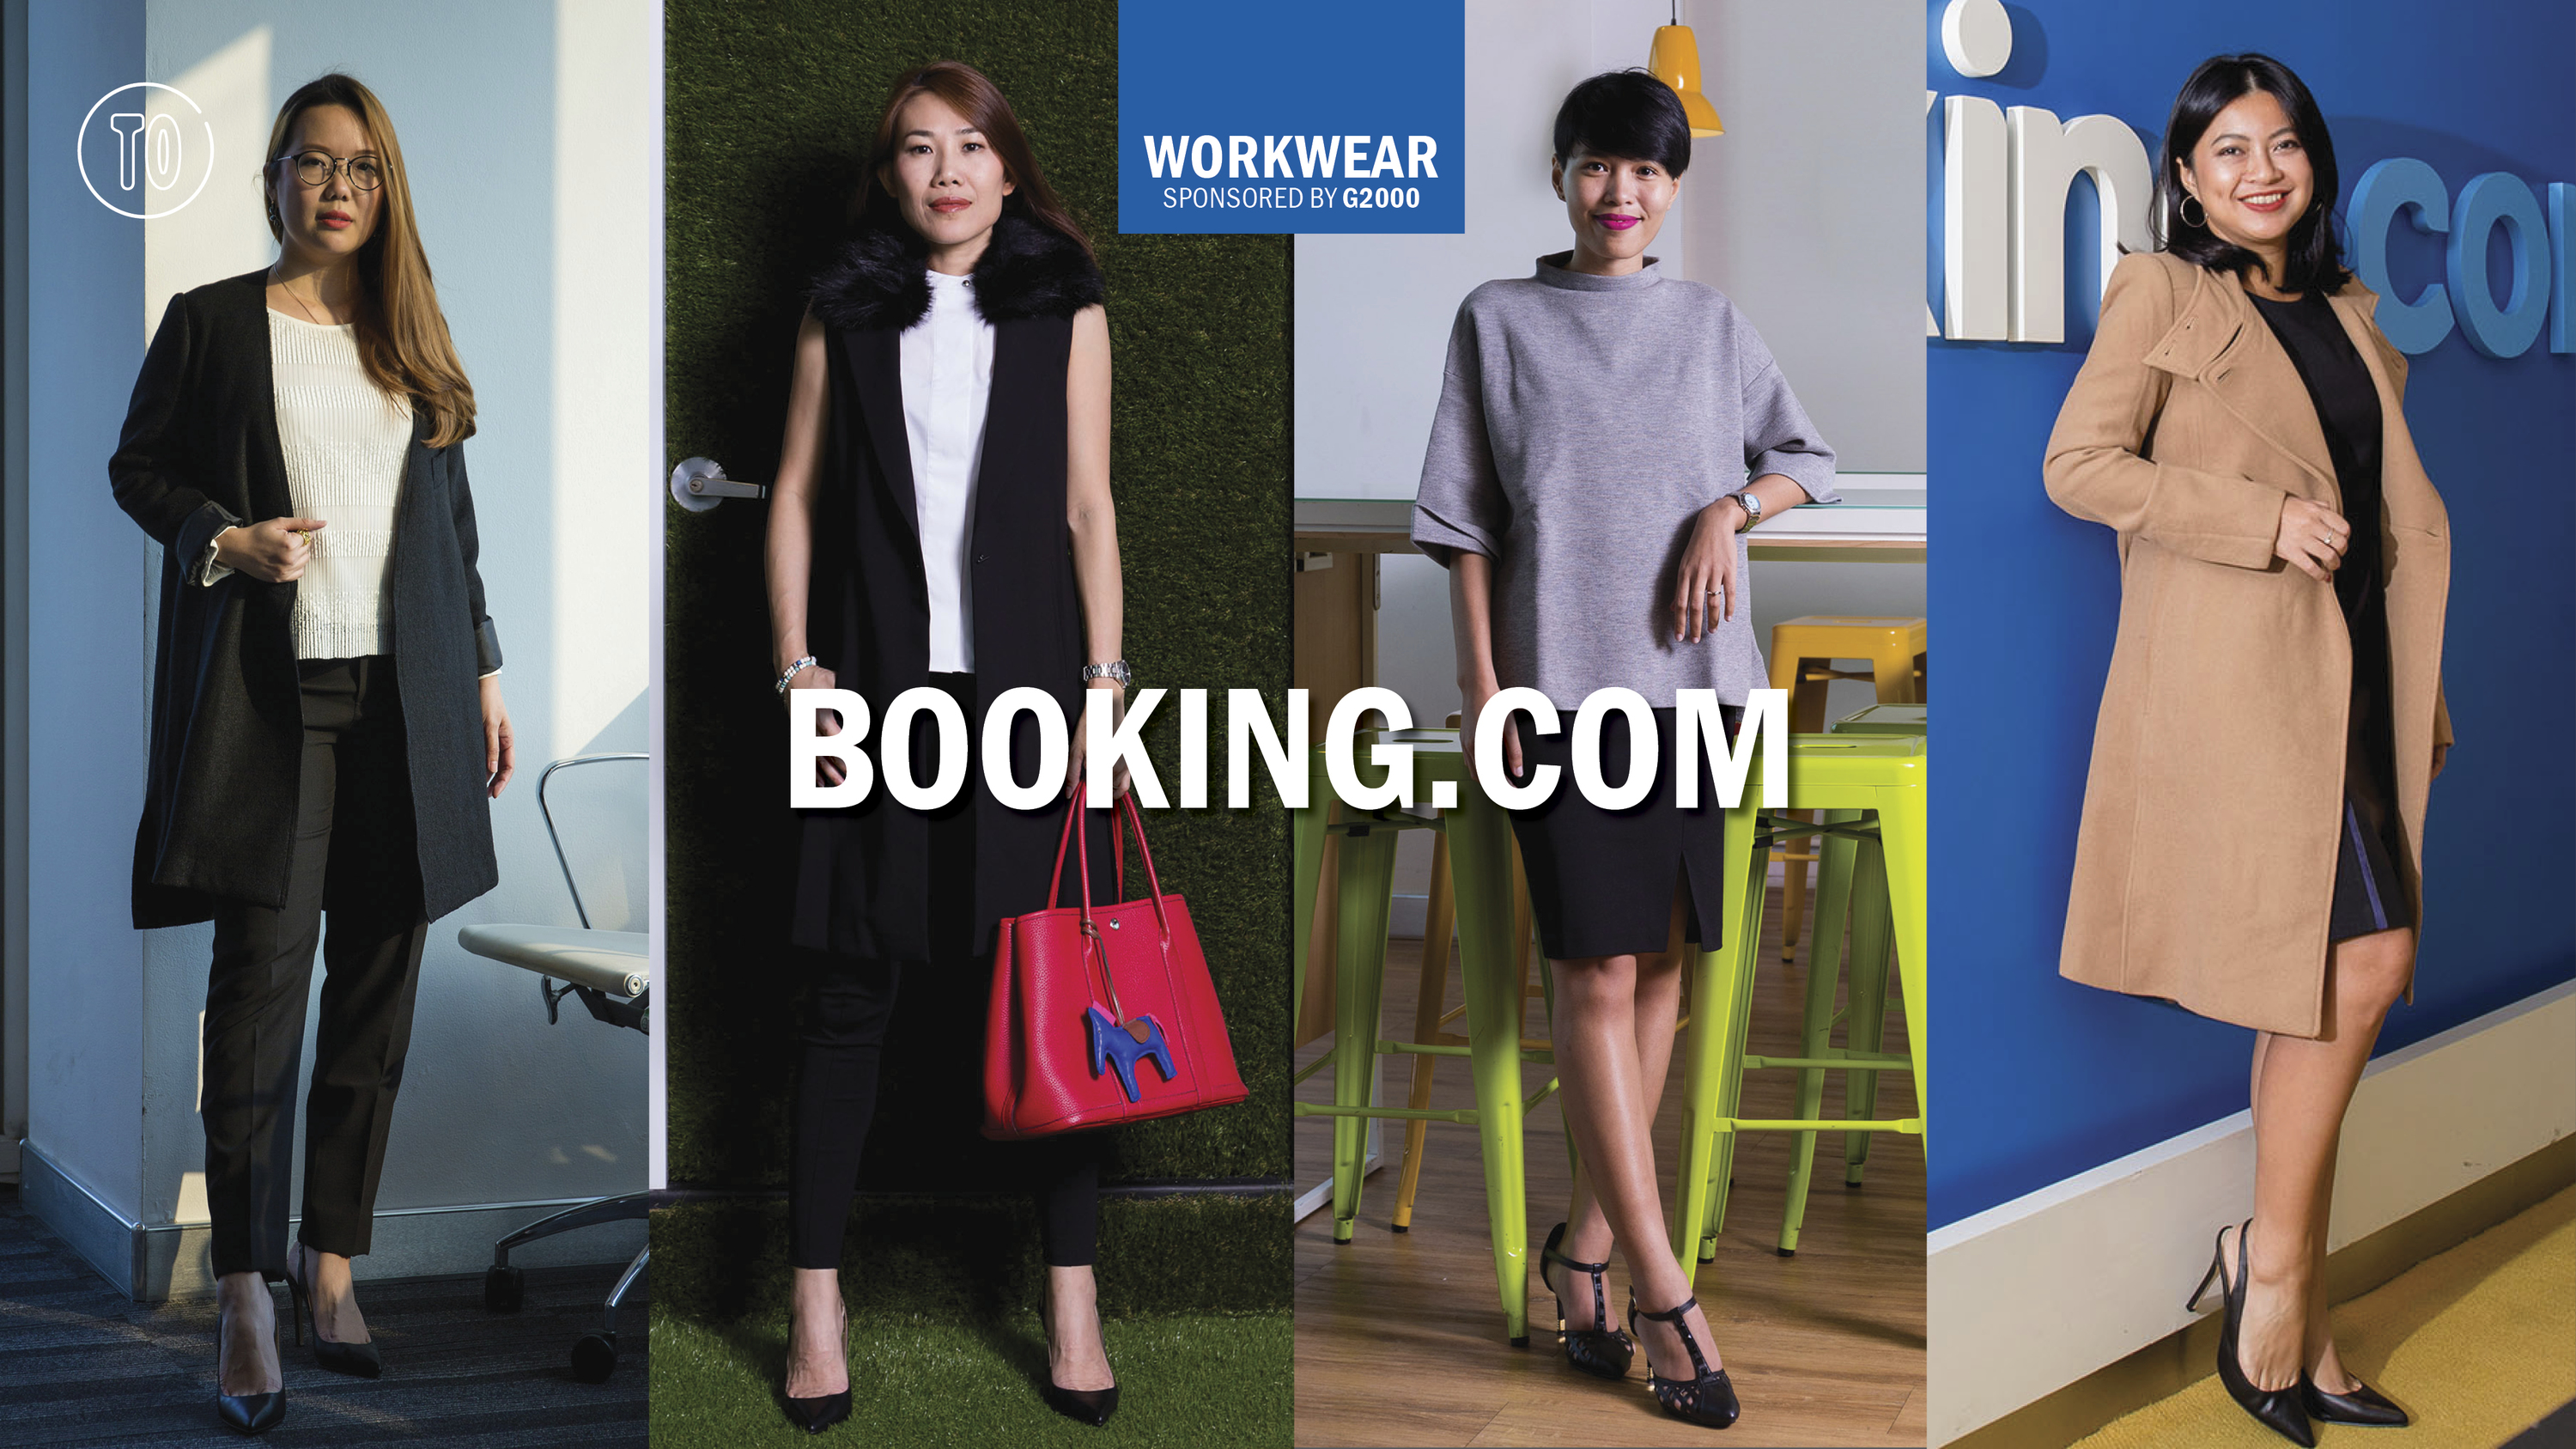 Workwear: Booking.com